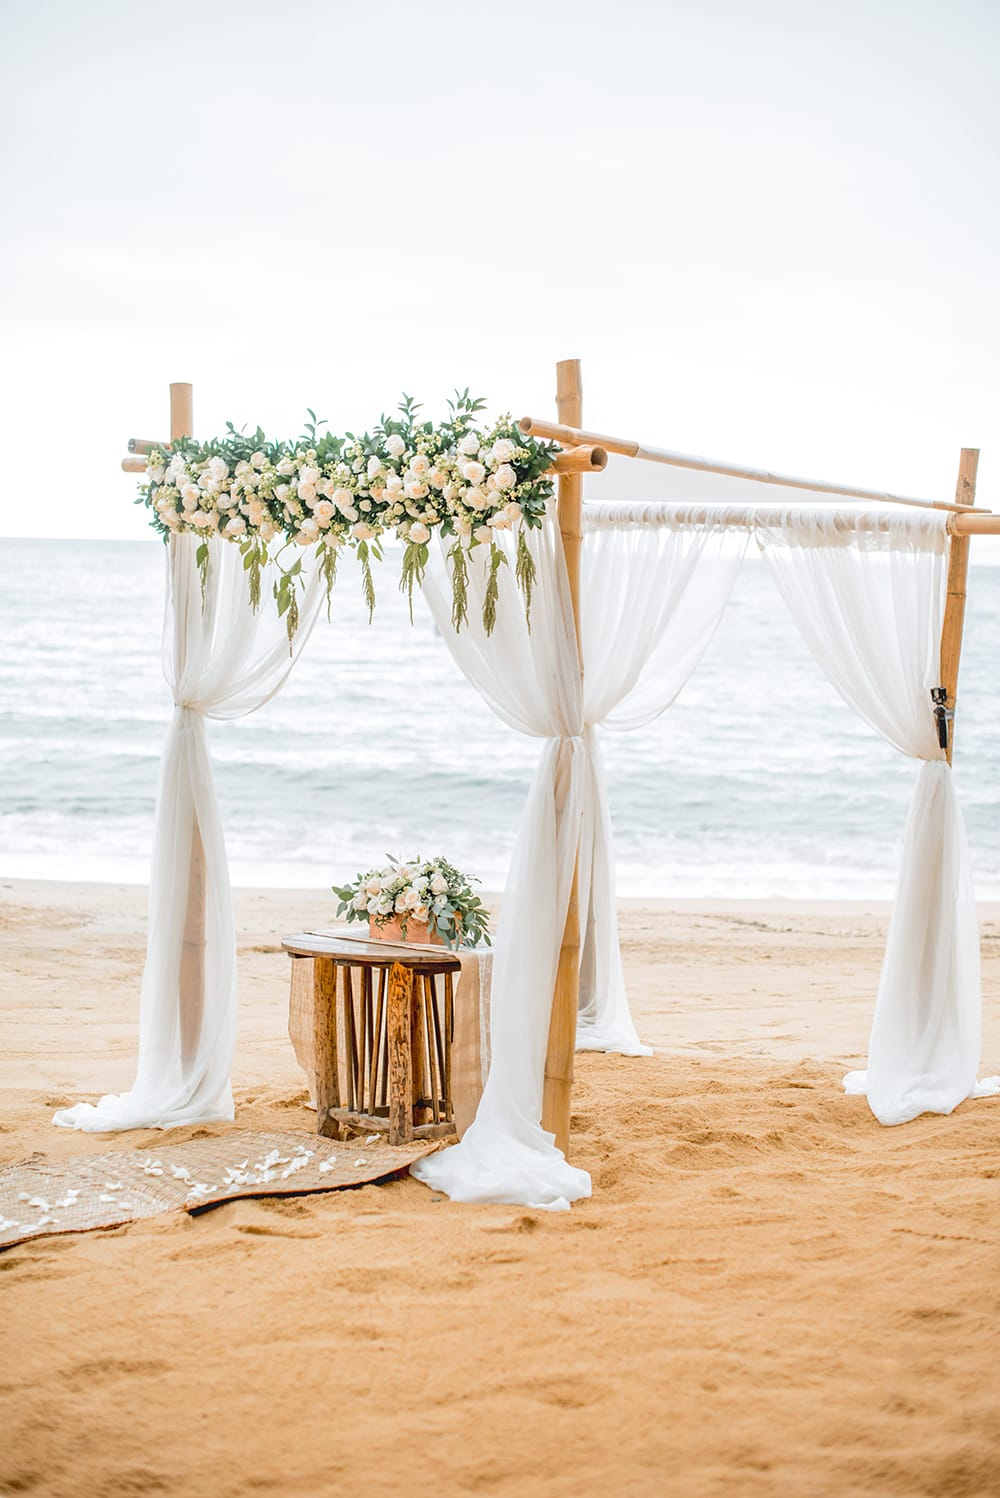 Beach set up for a wedding ceremony by Adventure Weddings with Chuppah draped with white fabric, accented by hanging floral arrangements.